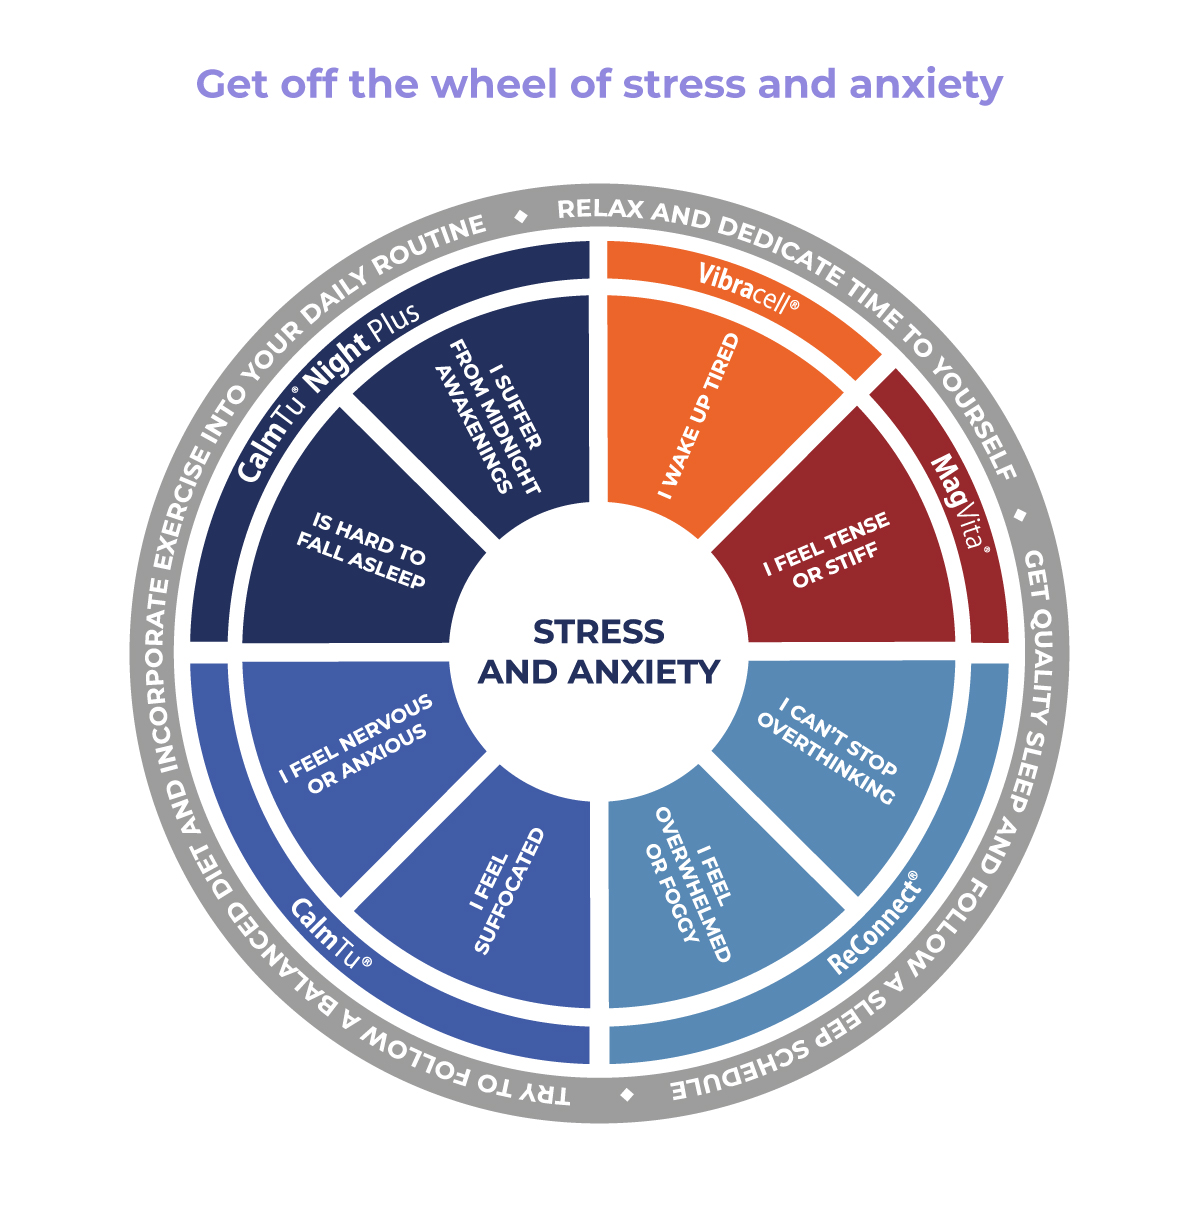 Stress and anxiety symptons